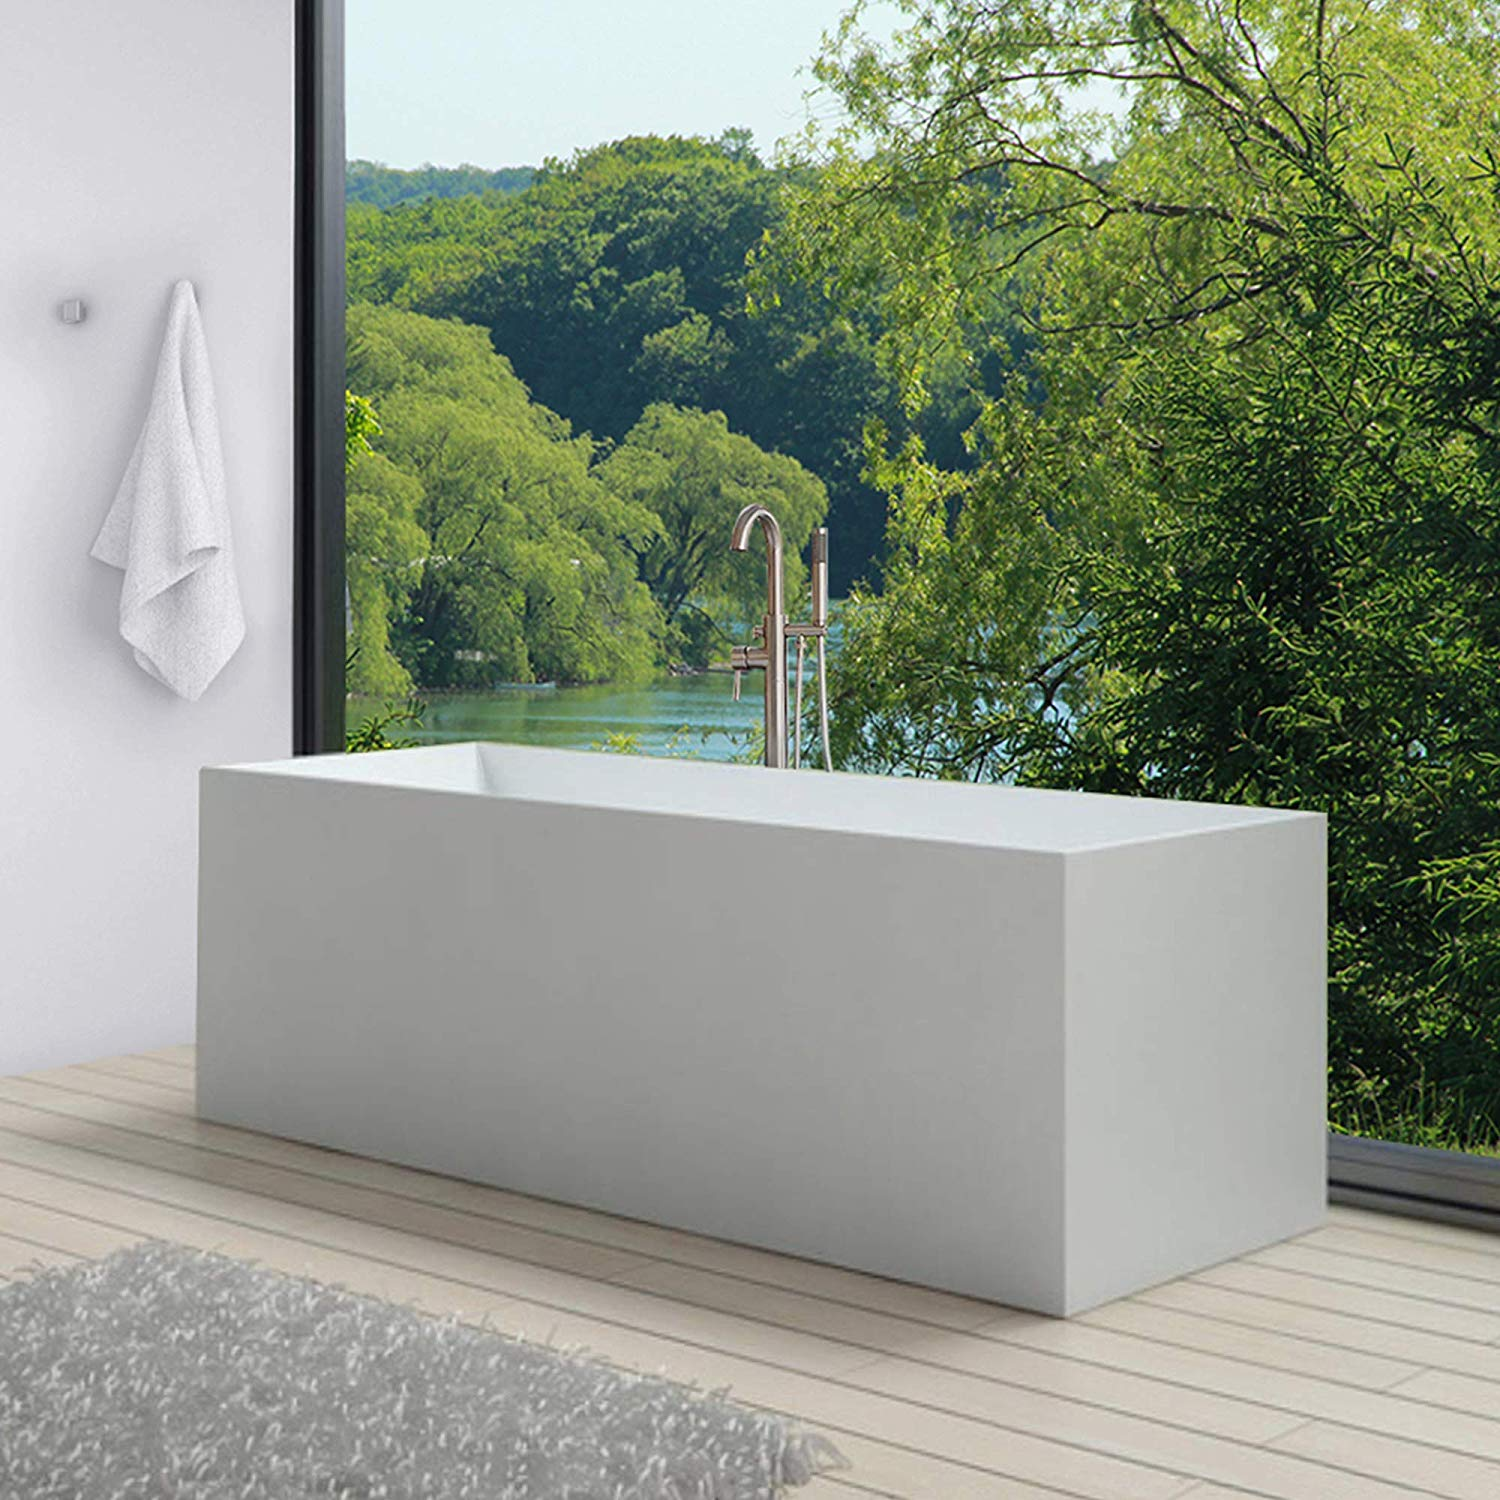 freestanding-bathtub-design-ideas-available-to-buy-online-1